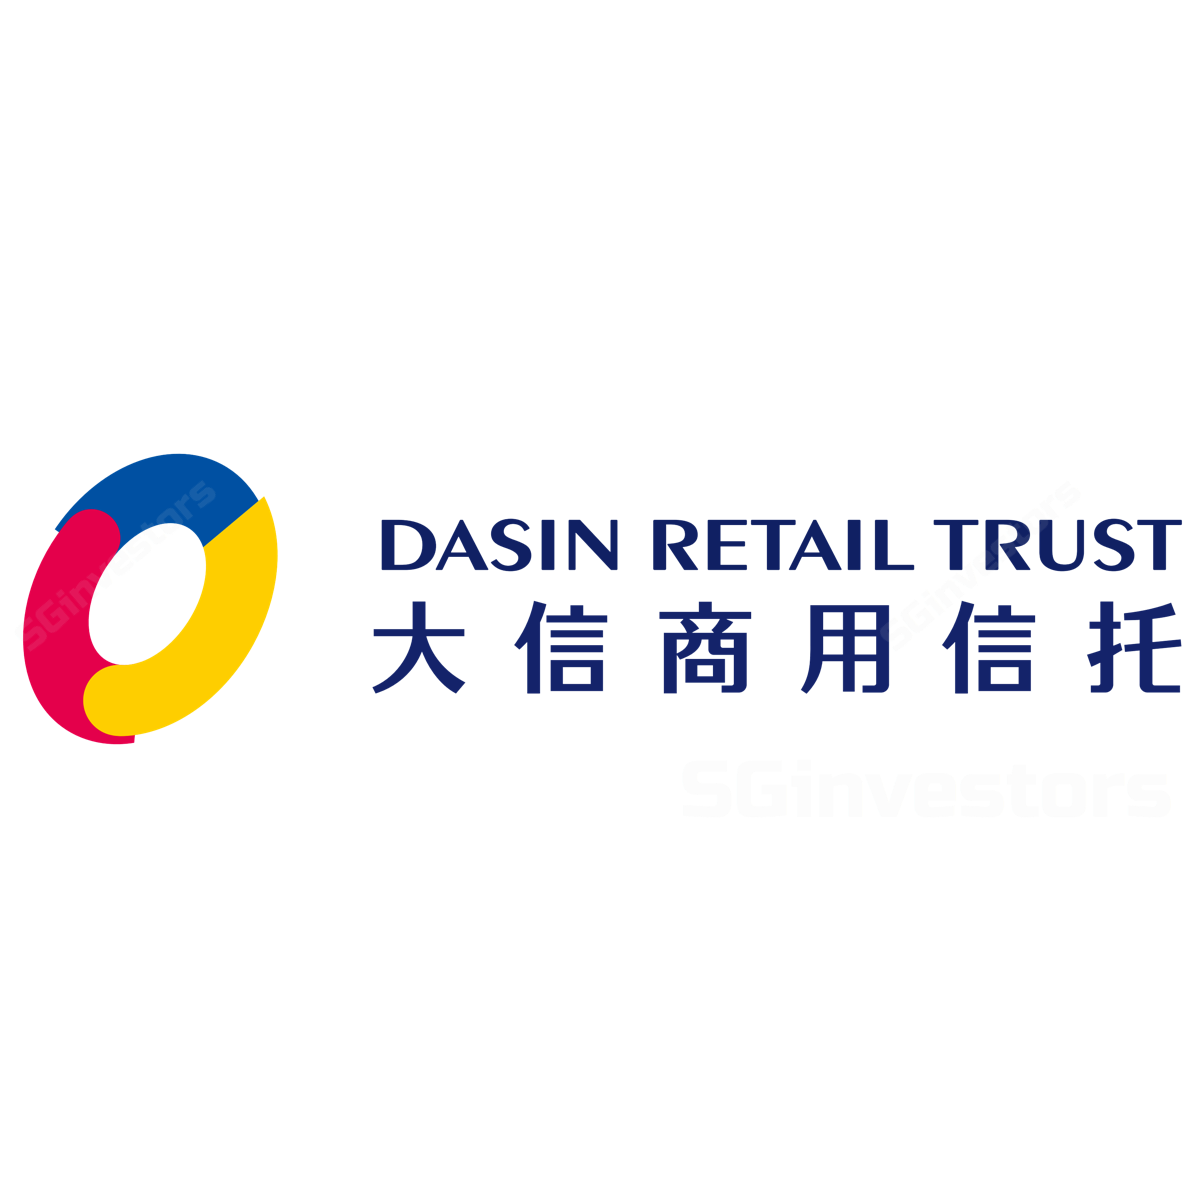 Dasin Retail Trust - Phillip Securities 2018-03-02: Tying Up FY2017 On A Steady Footing